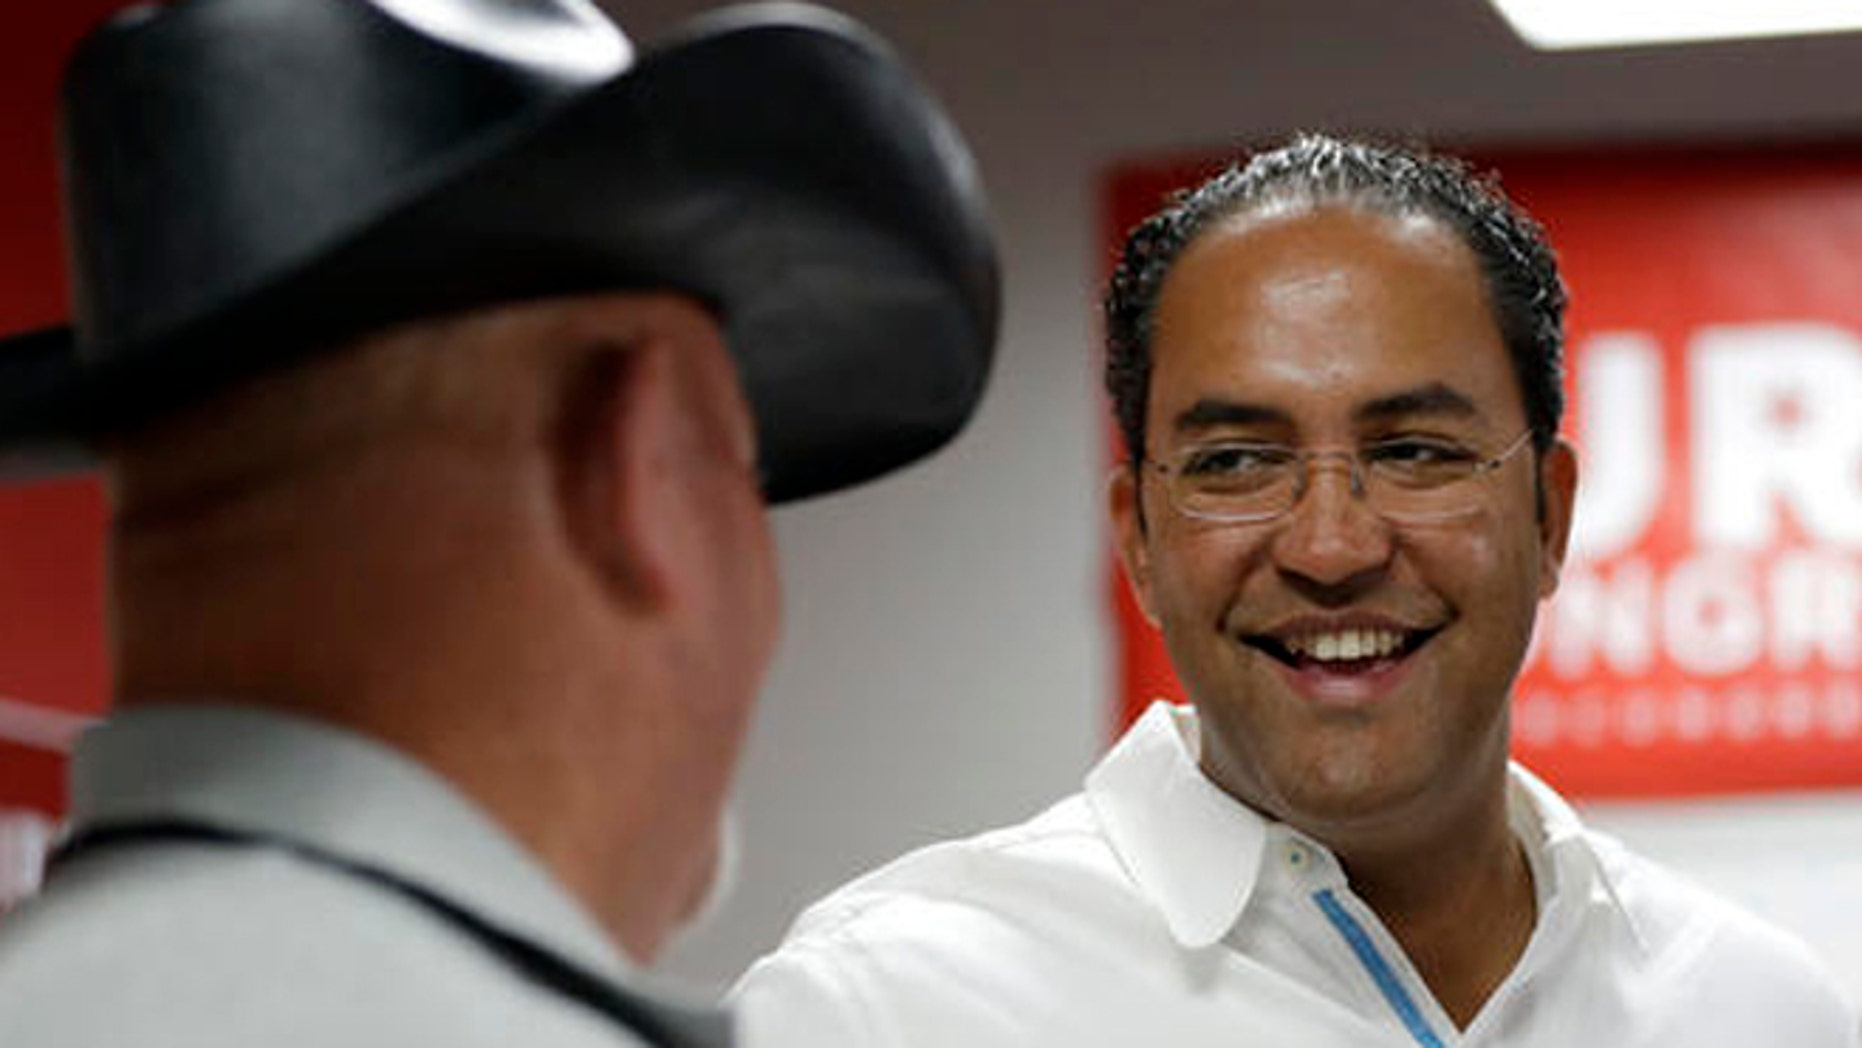 In this Saturday, Aug. 27, 2016 photo, first-term Republican Rep. Will Hurd, right, of Texas, talks with a supporter at a campaign office, in San Antonio. Many House Republican incumbents worry that blowback from Republican presidential nominee Donald Trump's anti-Hispanic rhetoric and promises to build a towering wall the length of the U.S.-Mexico border could hurt their re-election chances, a problem especially acute for those in heavily Latino districts like that of Hurd, whose territory encompasses 820 miles of the U.S.-Mexico border. (AP Photo/Eric Gay)